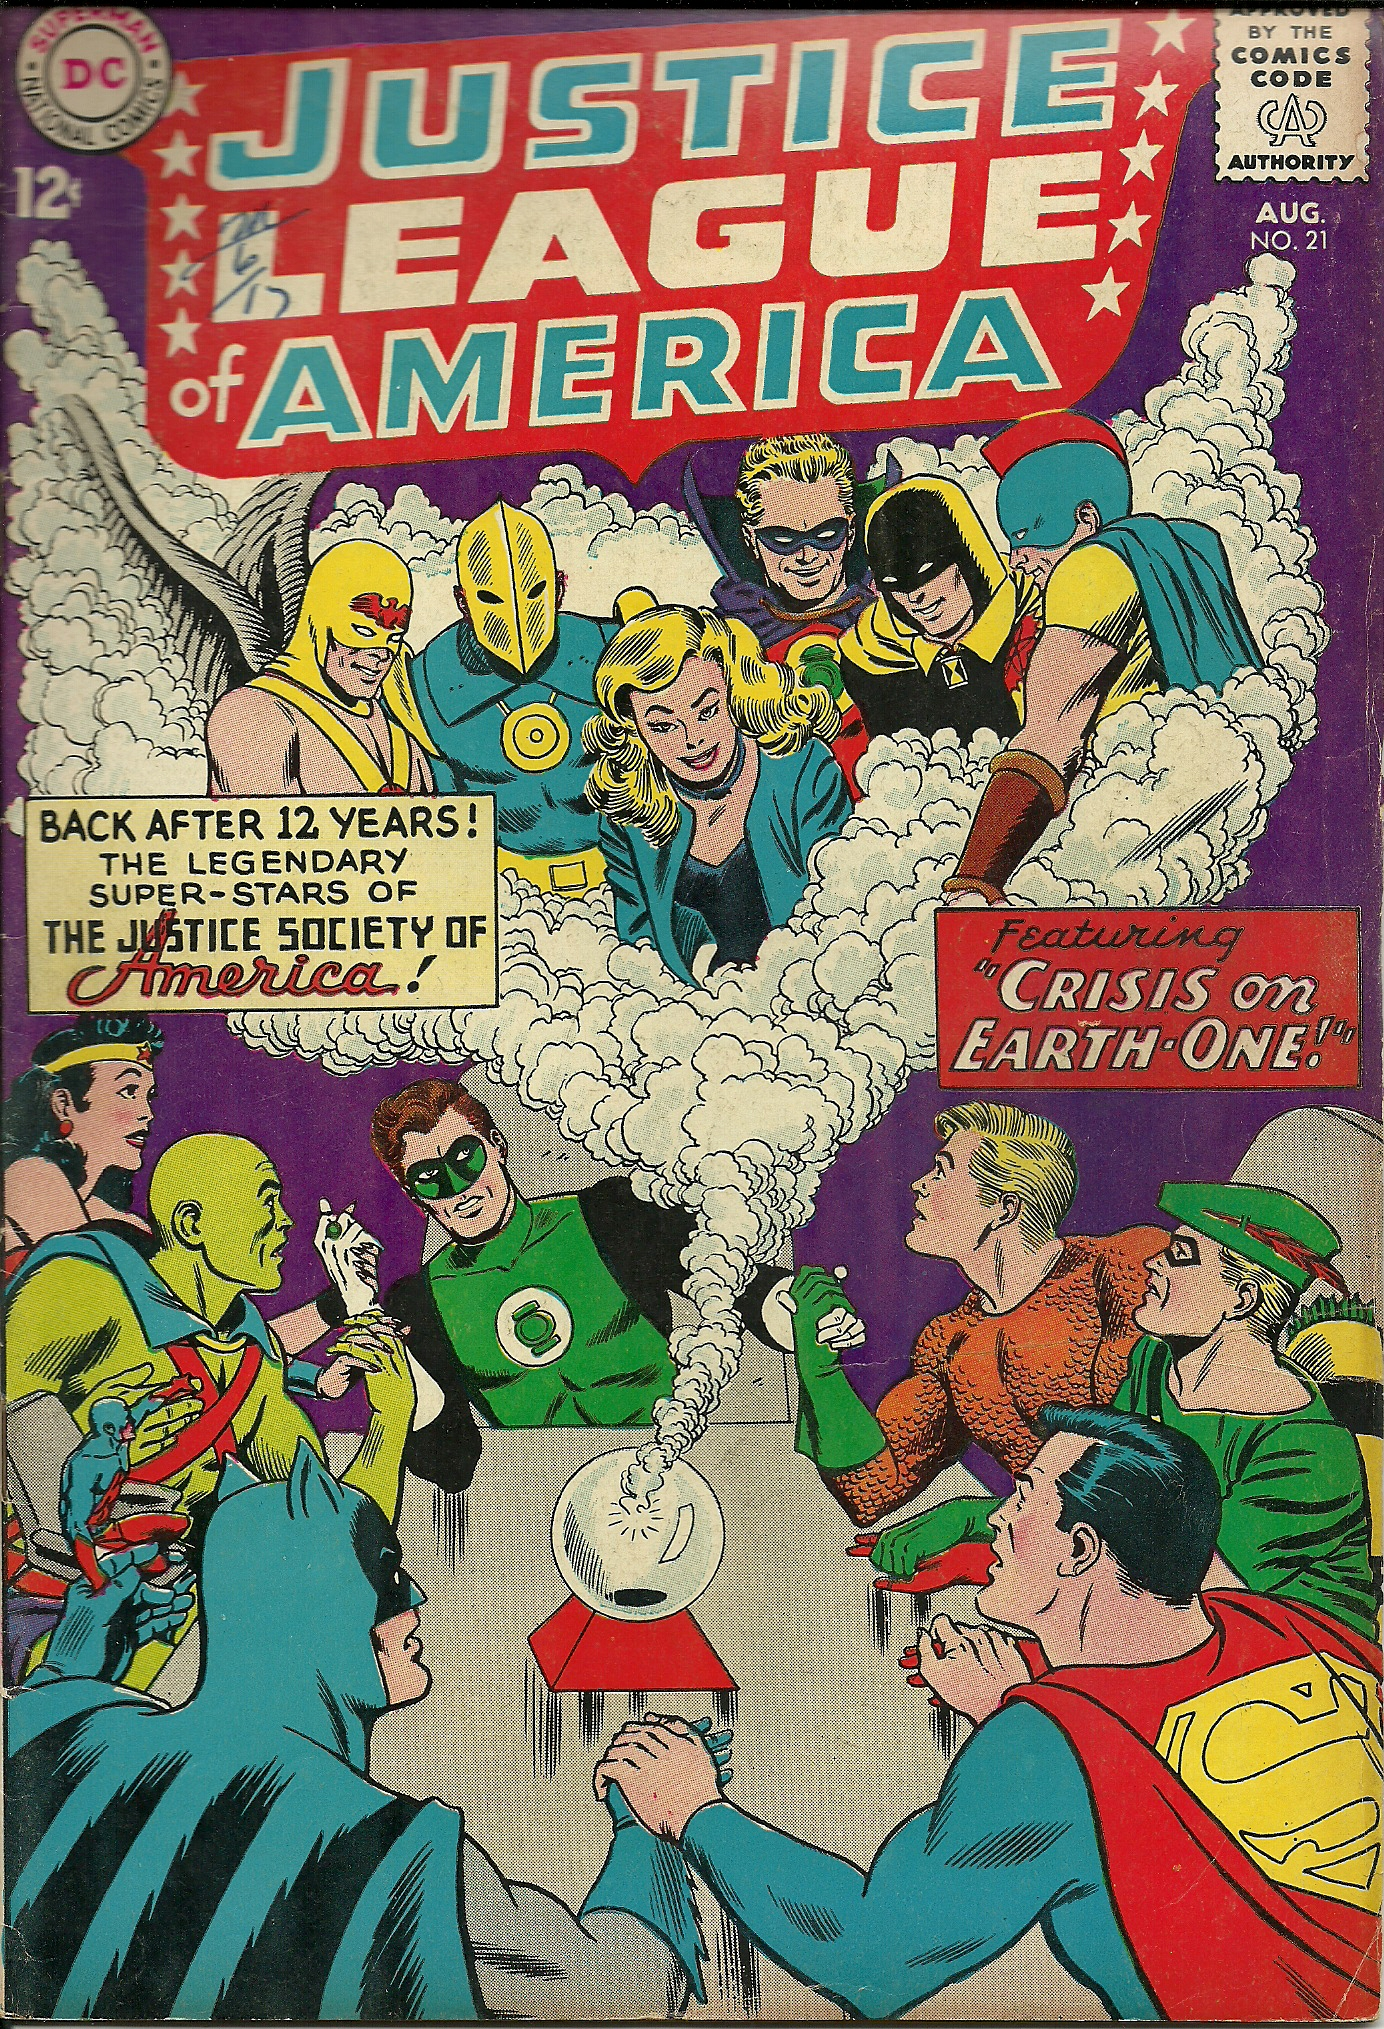 Justice League of America–No. 21–August 1963. In good condition ...